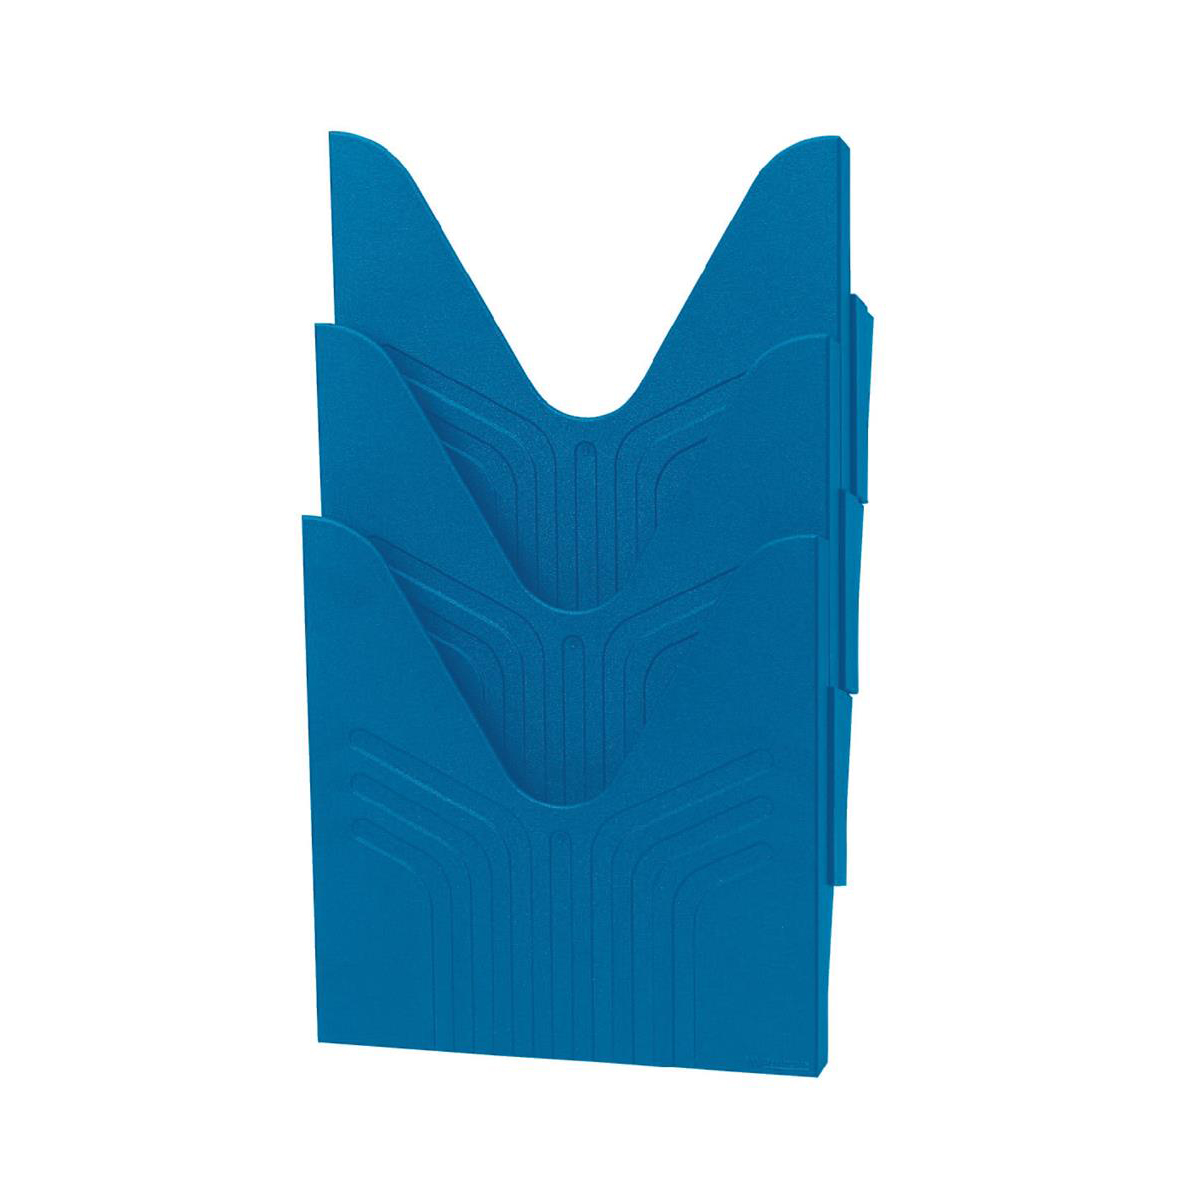 Avery Mainline Display File A4 Blue Ref 144-3 BLUE [Pack 3]